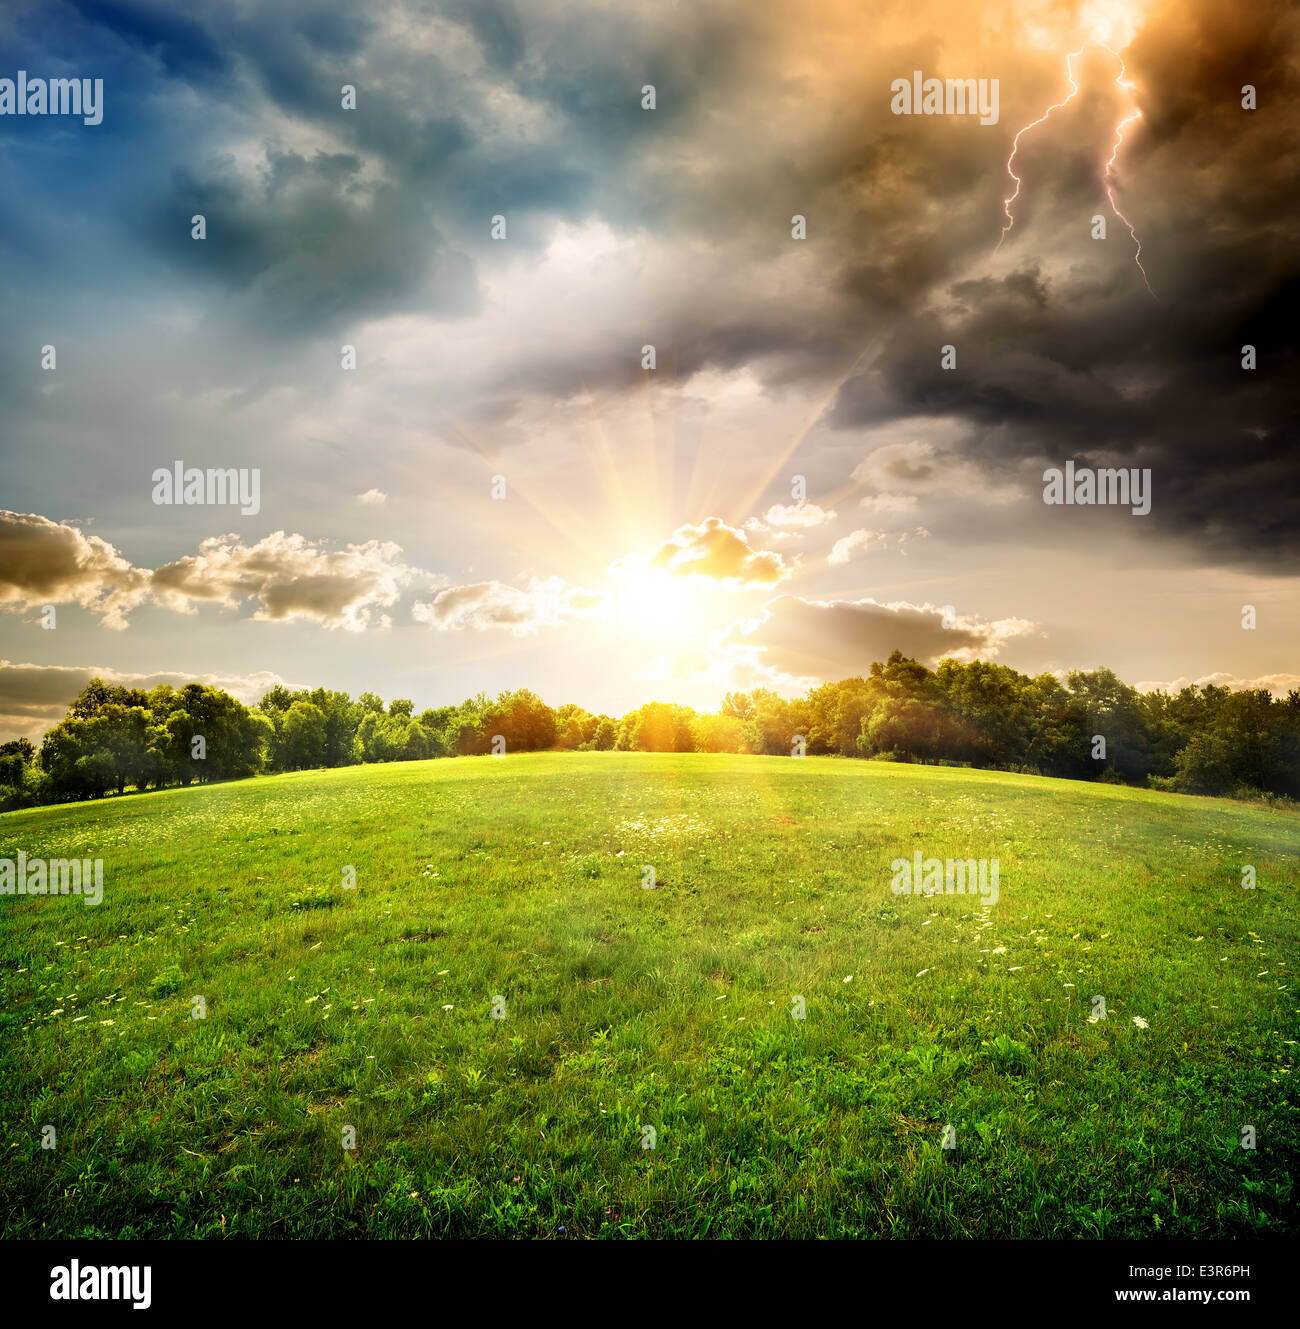 Bright lightning over the field and forest - Stock Image